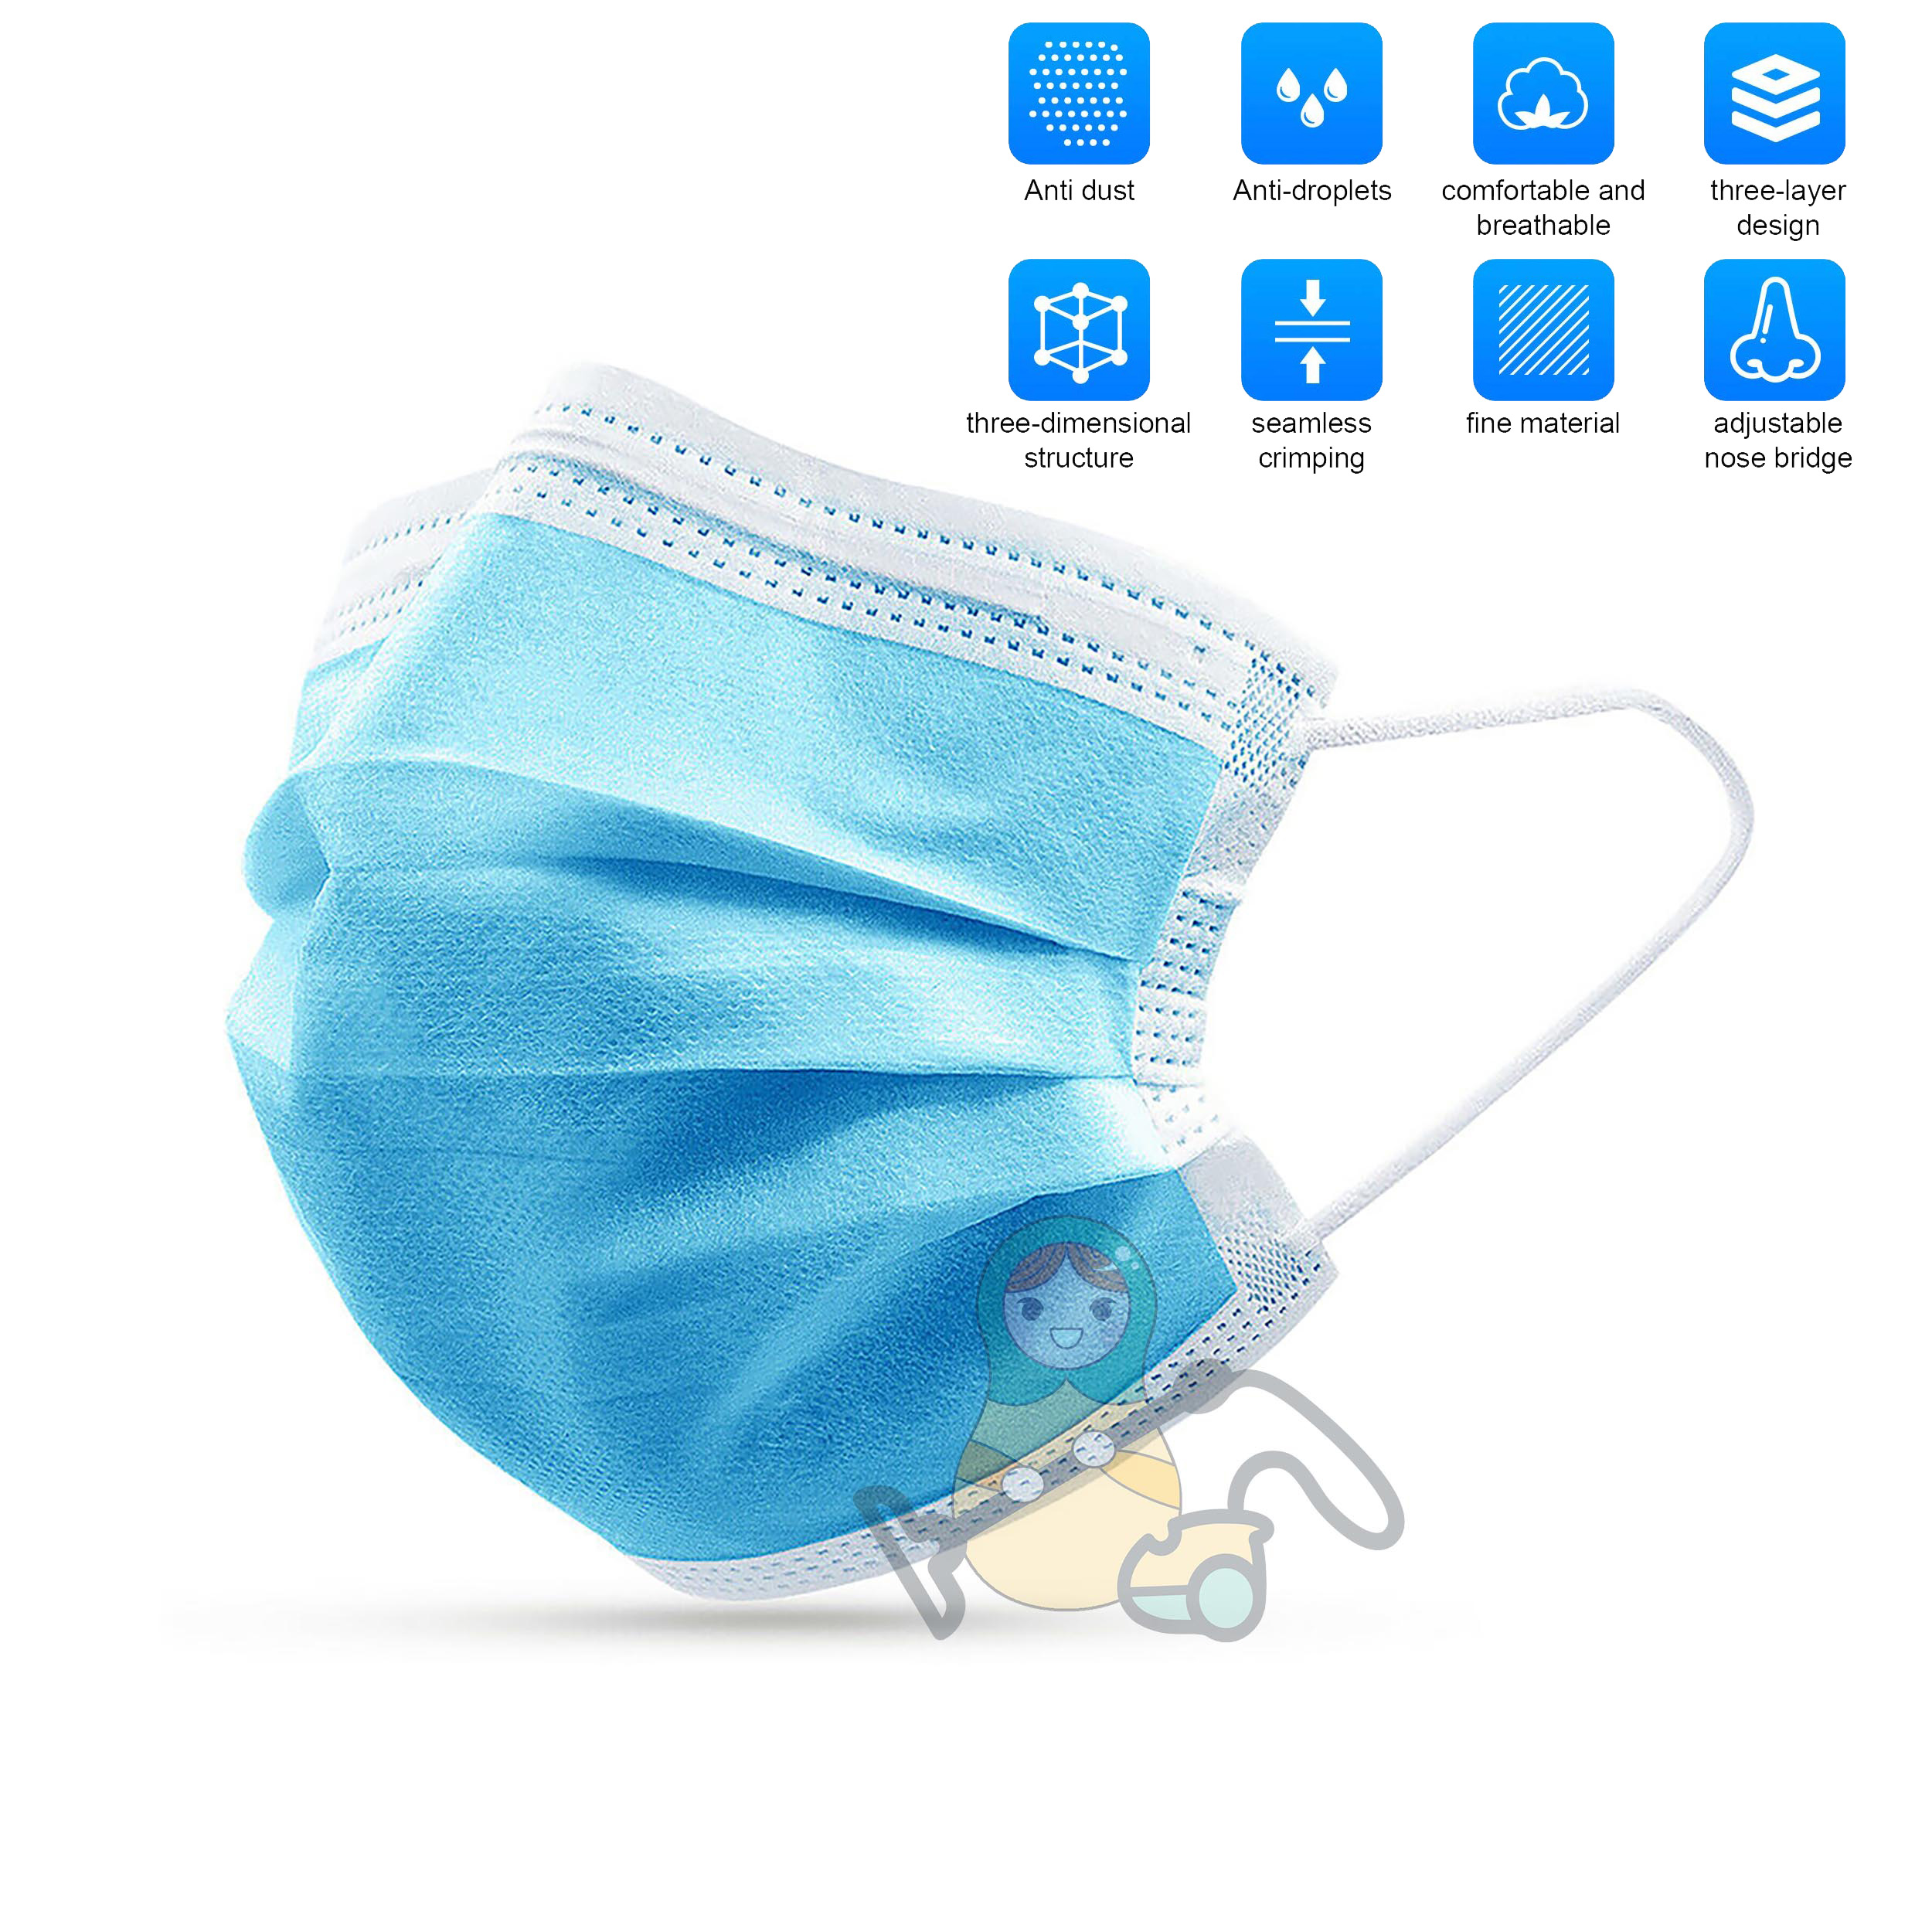 3-Ply Disposable Masks Coronavirus  Anti-virus Medical Surgical Mask Ear-loop one time face respirator Mouth covers 1